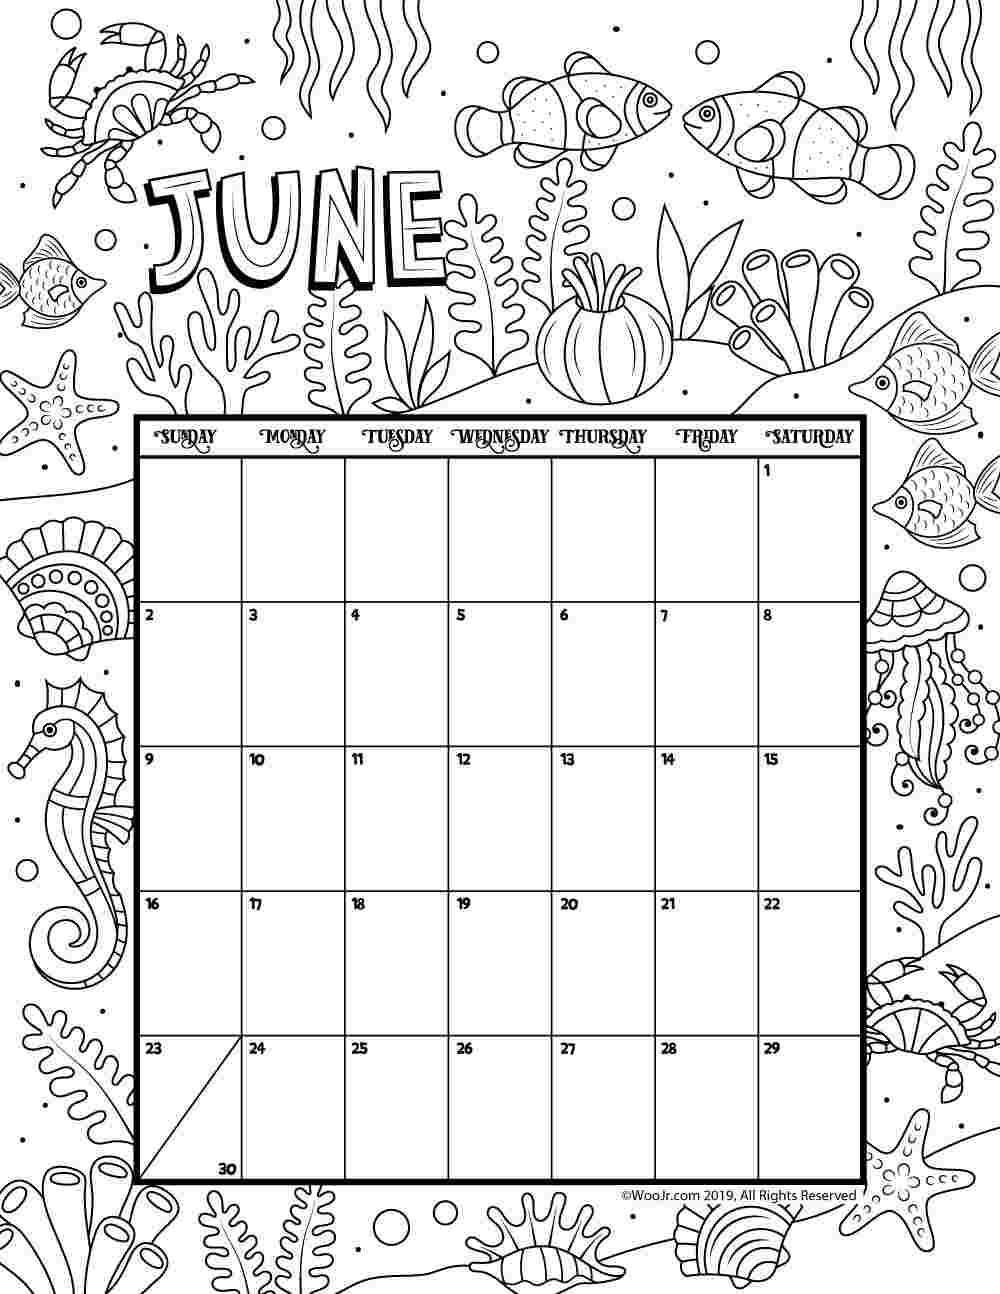 Printable Coloring Calendar 2019 2019 Coloring Pages with Adult Coloring 2020 Calendar Printable